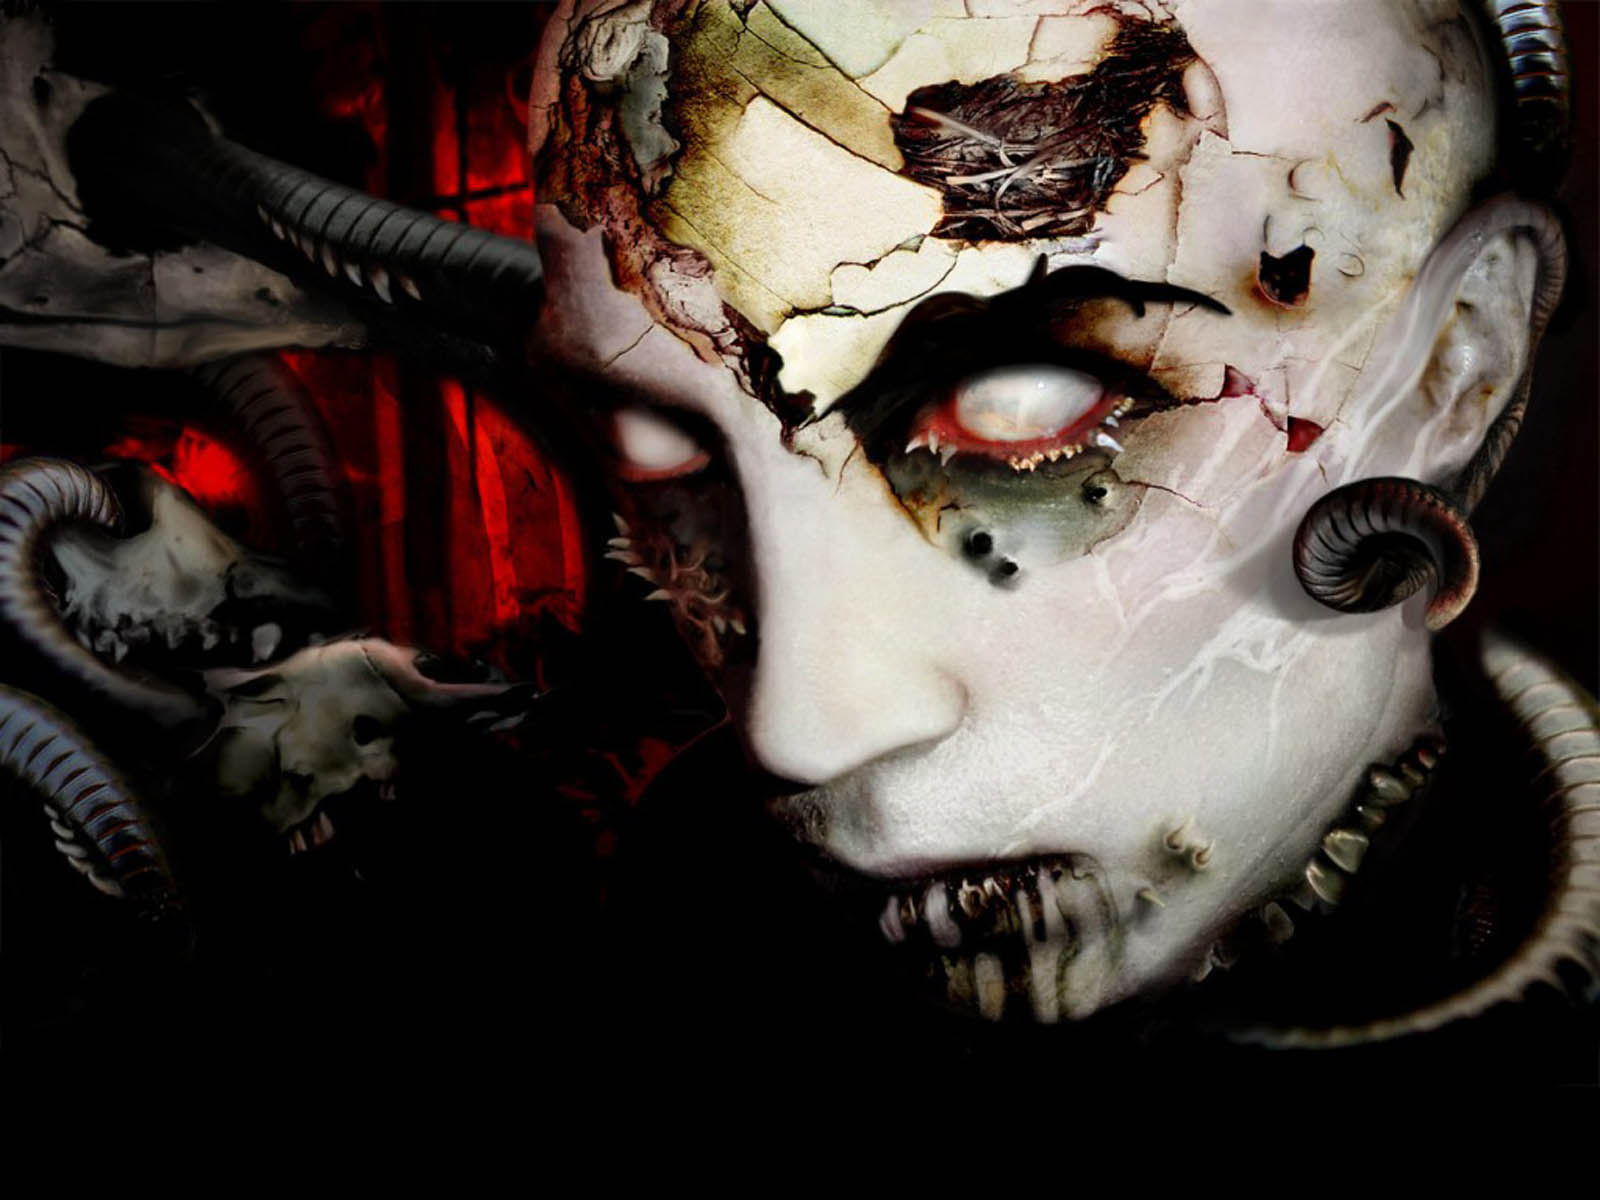 XS Wallpapers HD Scary Horror Wallpapers 1600x1200